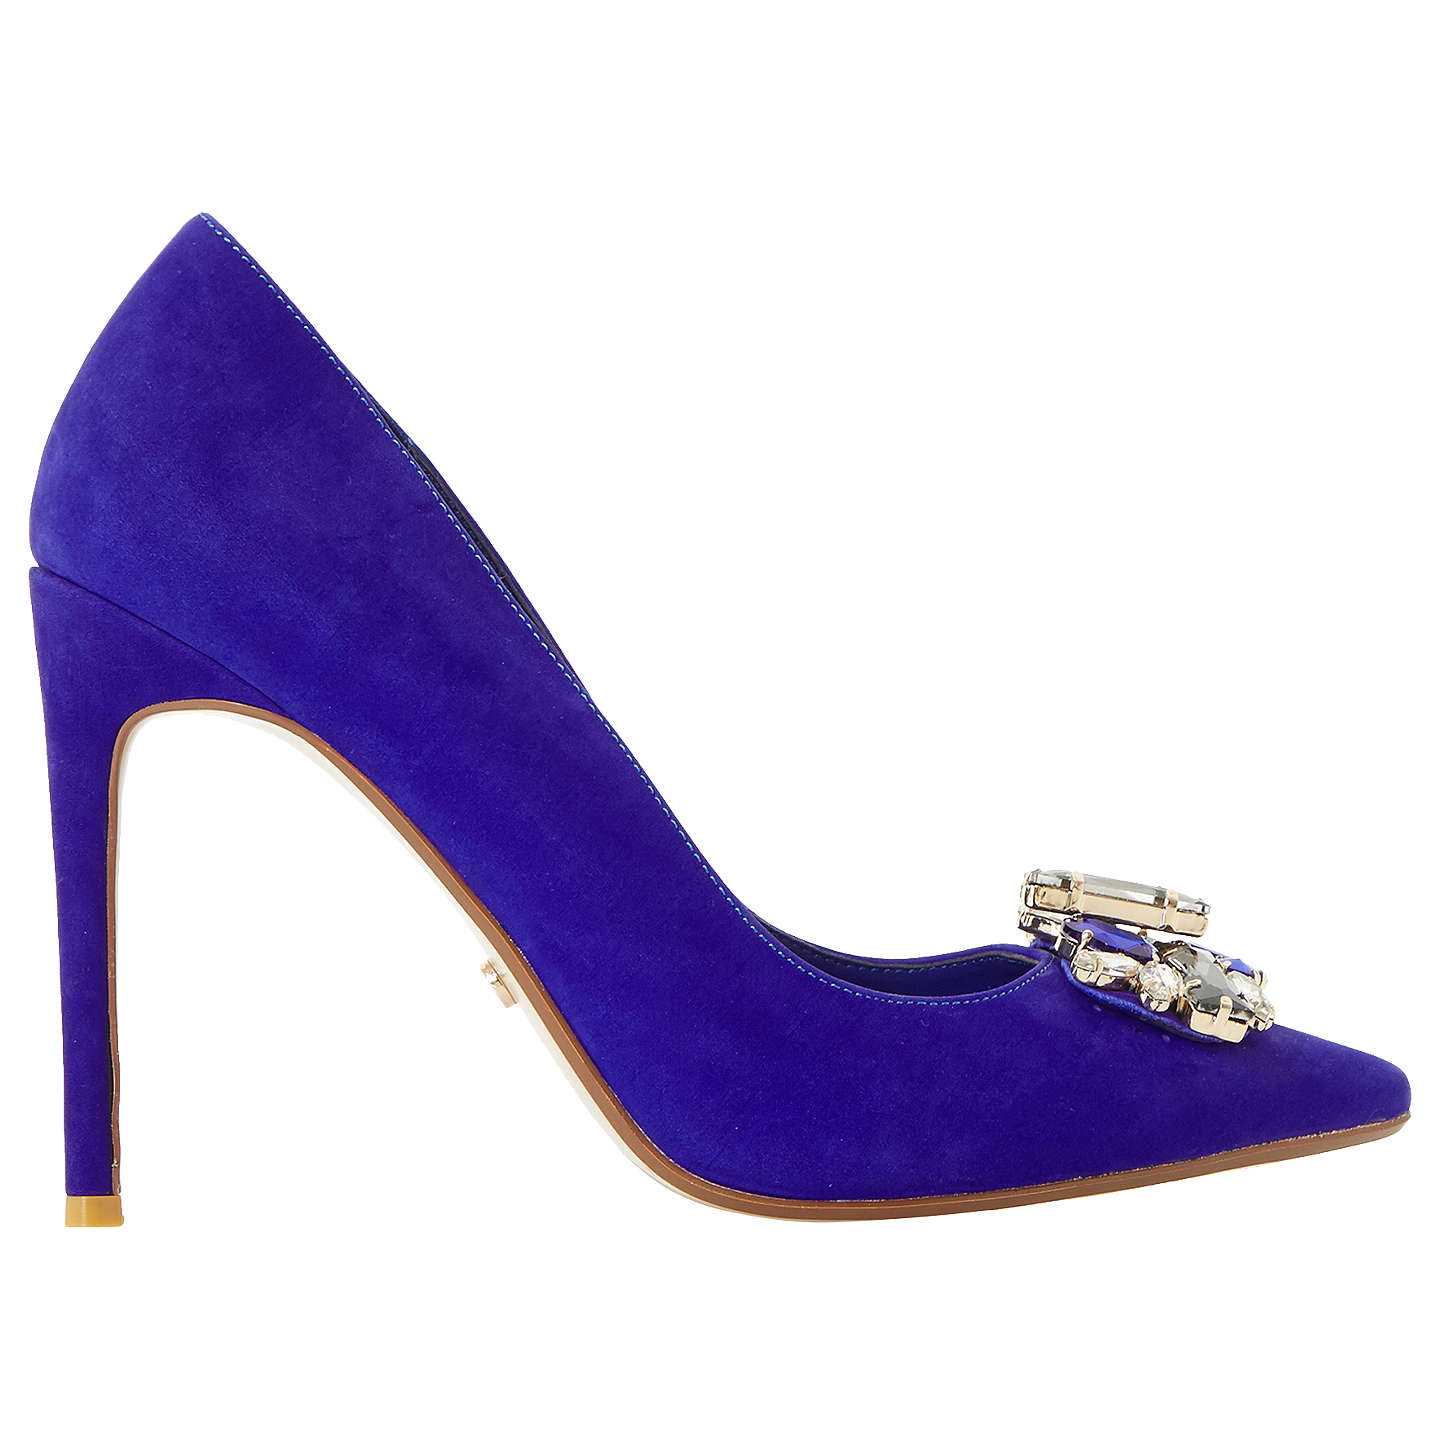 BuyDune Bardot Jewelled Stiletto Heeled Court Shoes, Blue, 3 Online at johnlewis.com